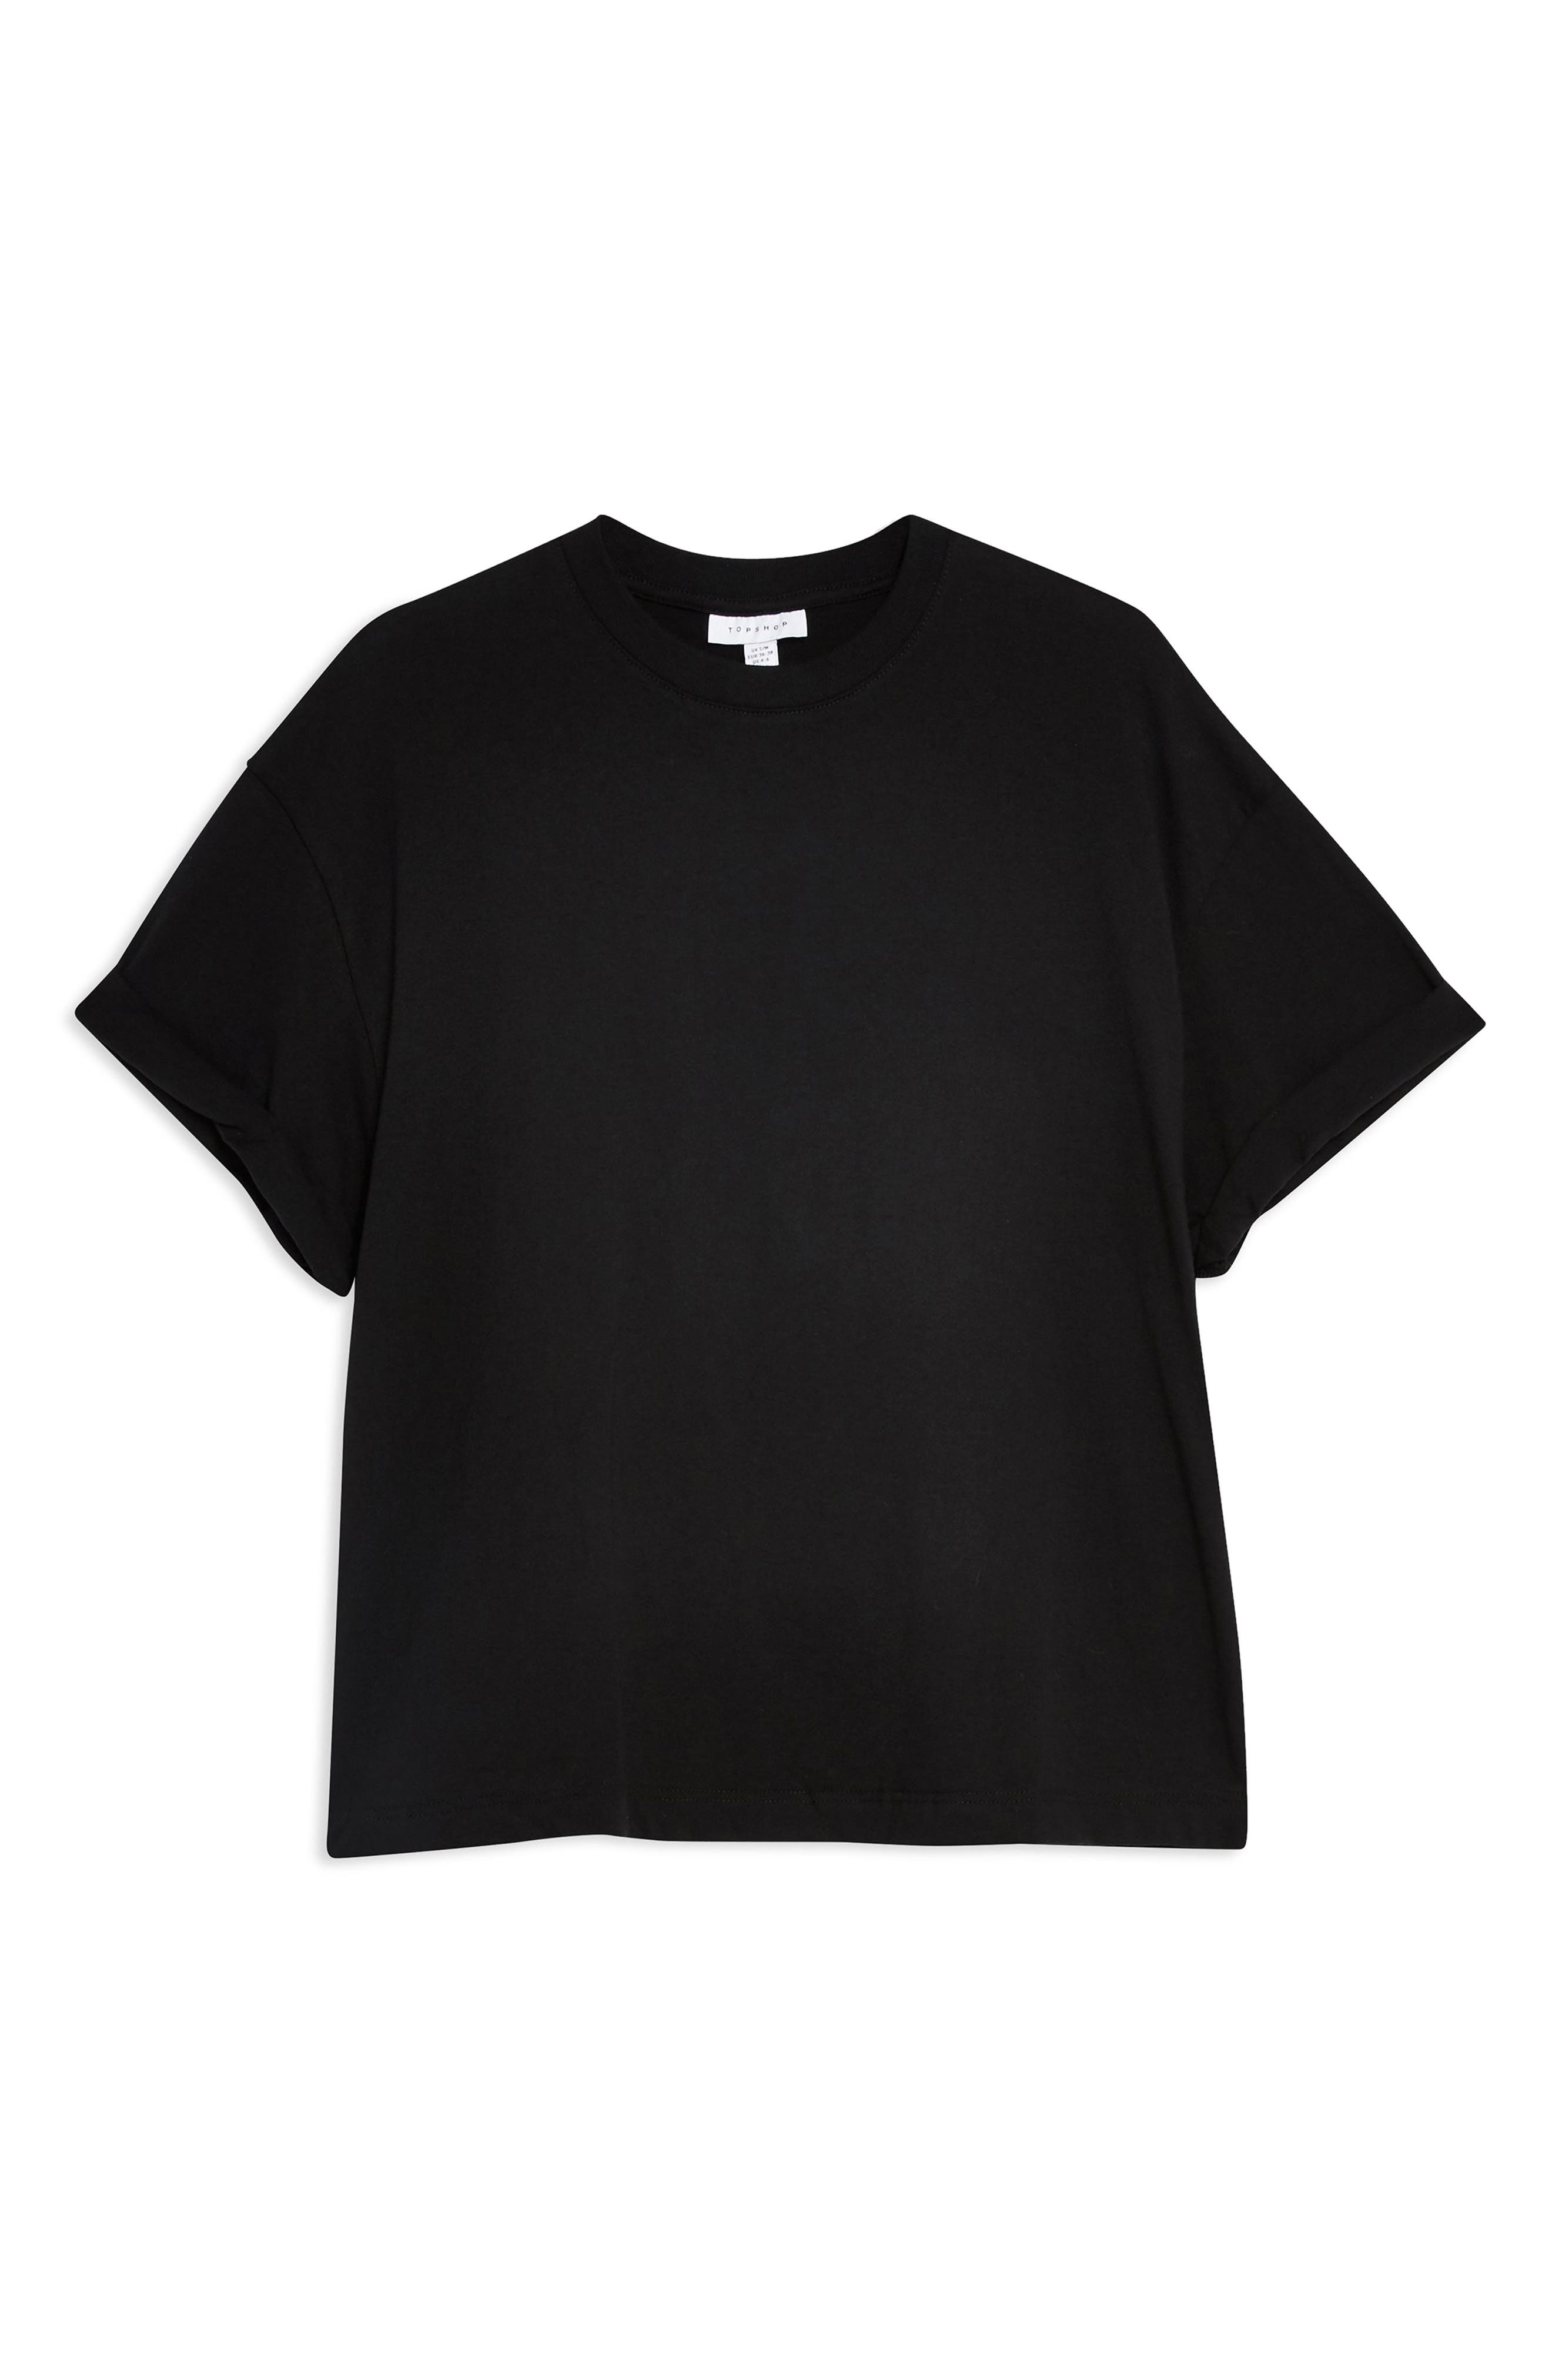 TOPSHOP, Boxy Roll Tee, Alternate thumbnail 3, color, BLACK